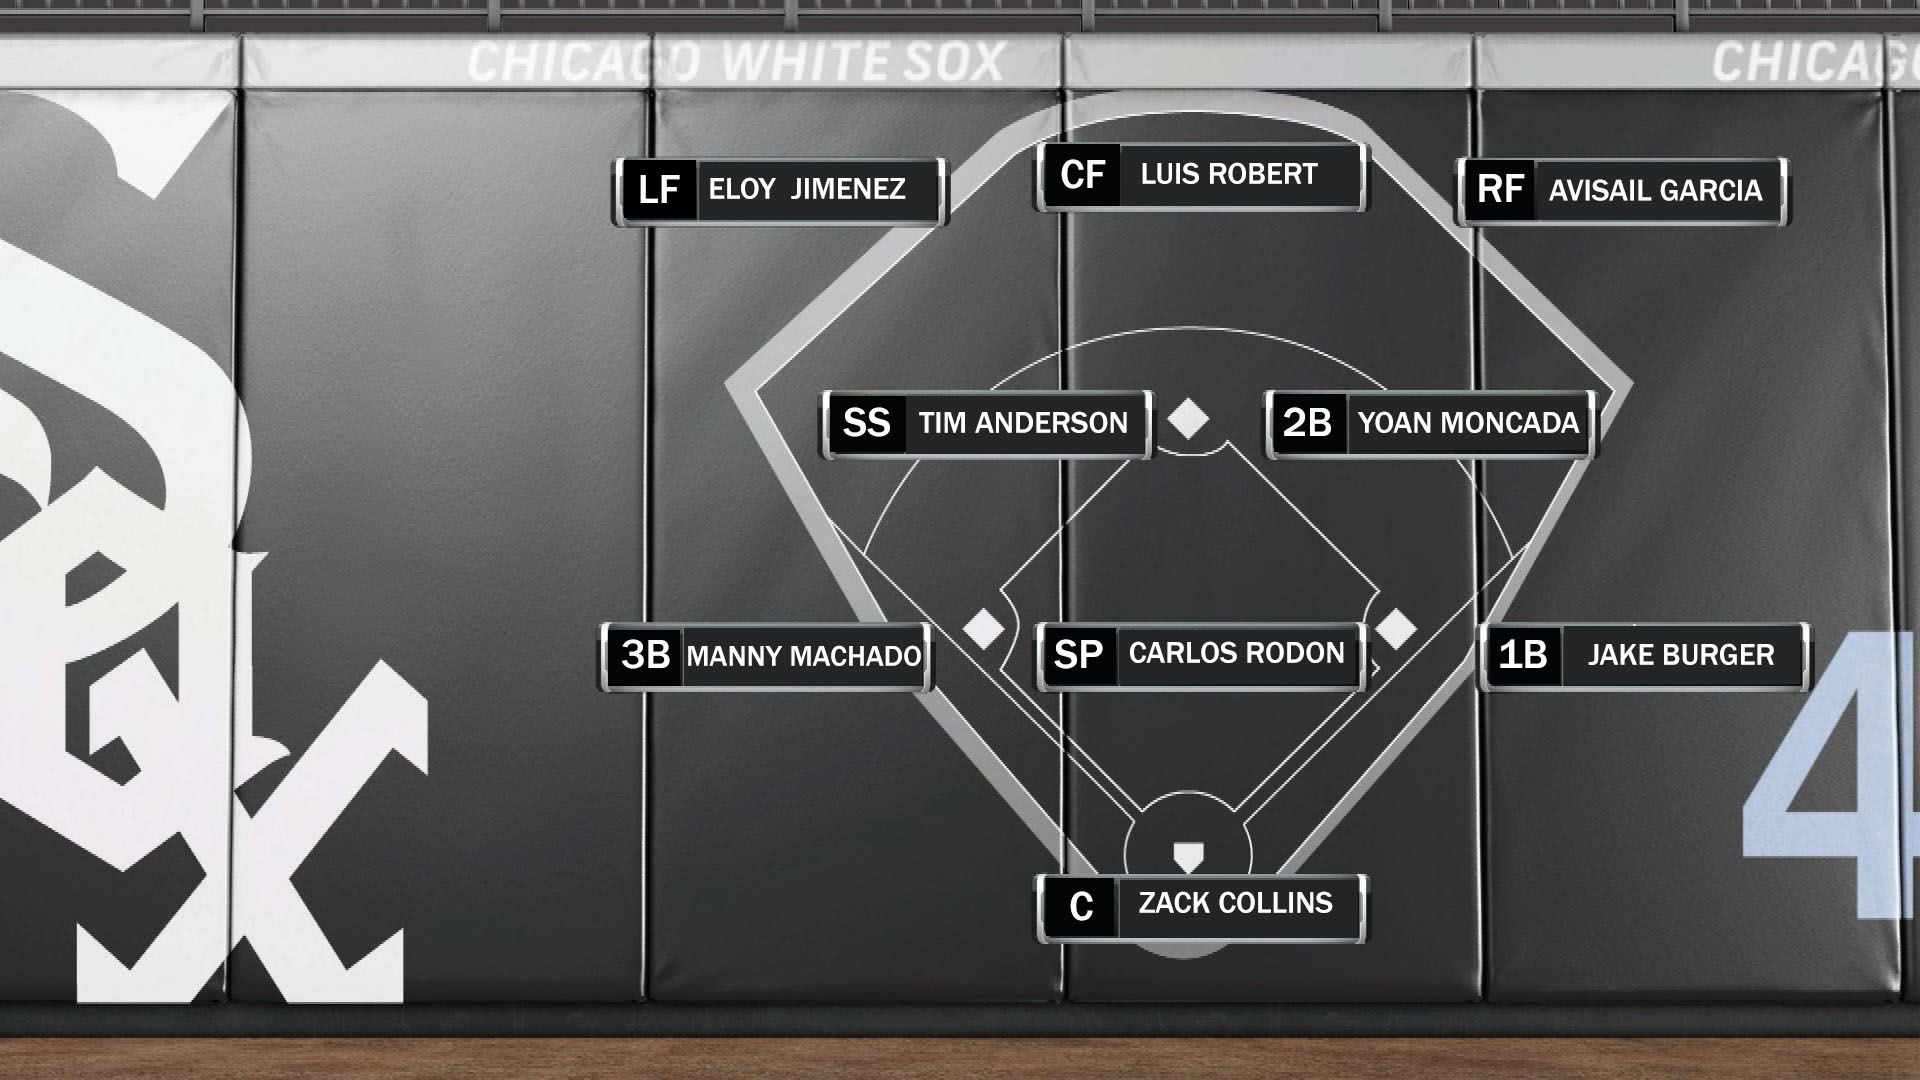 Chicago White Sox Home Opener 2020.Projecting The 2020 Chicago White Sox World Series